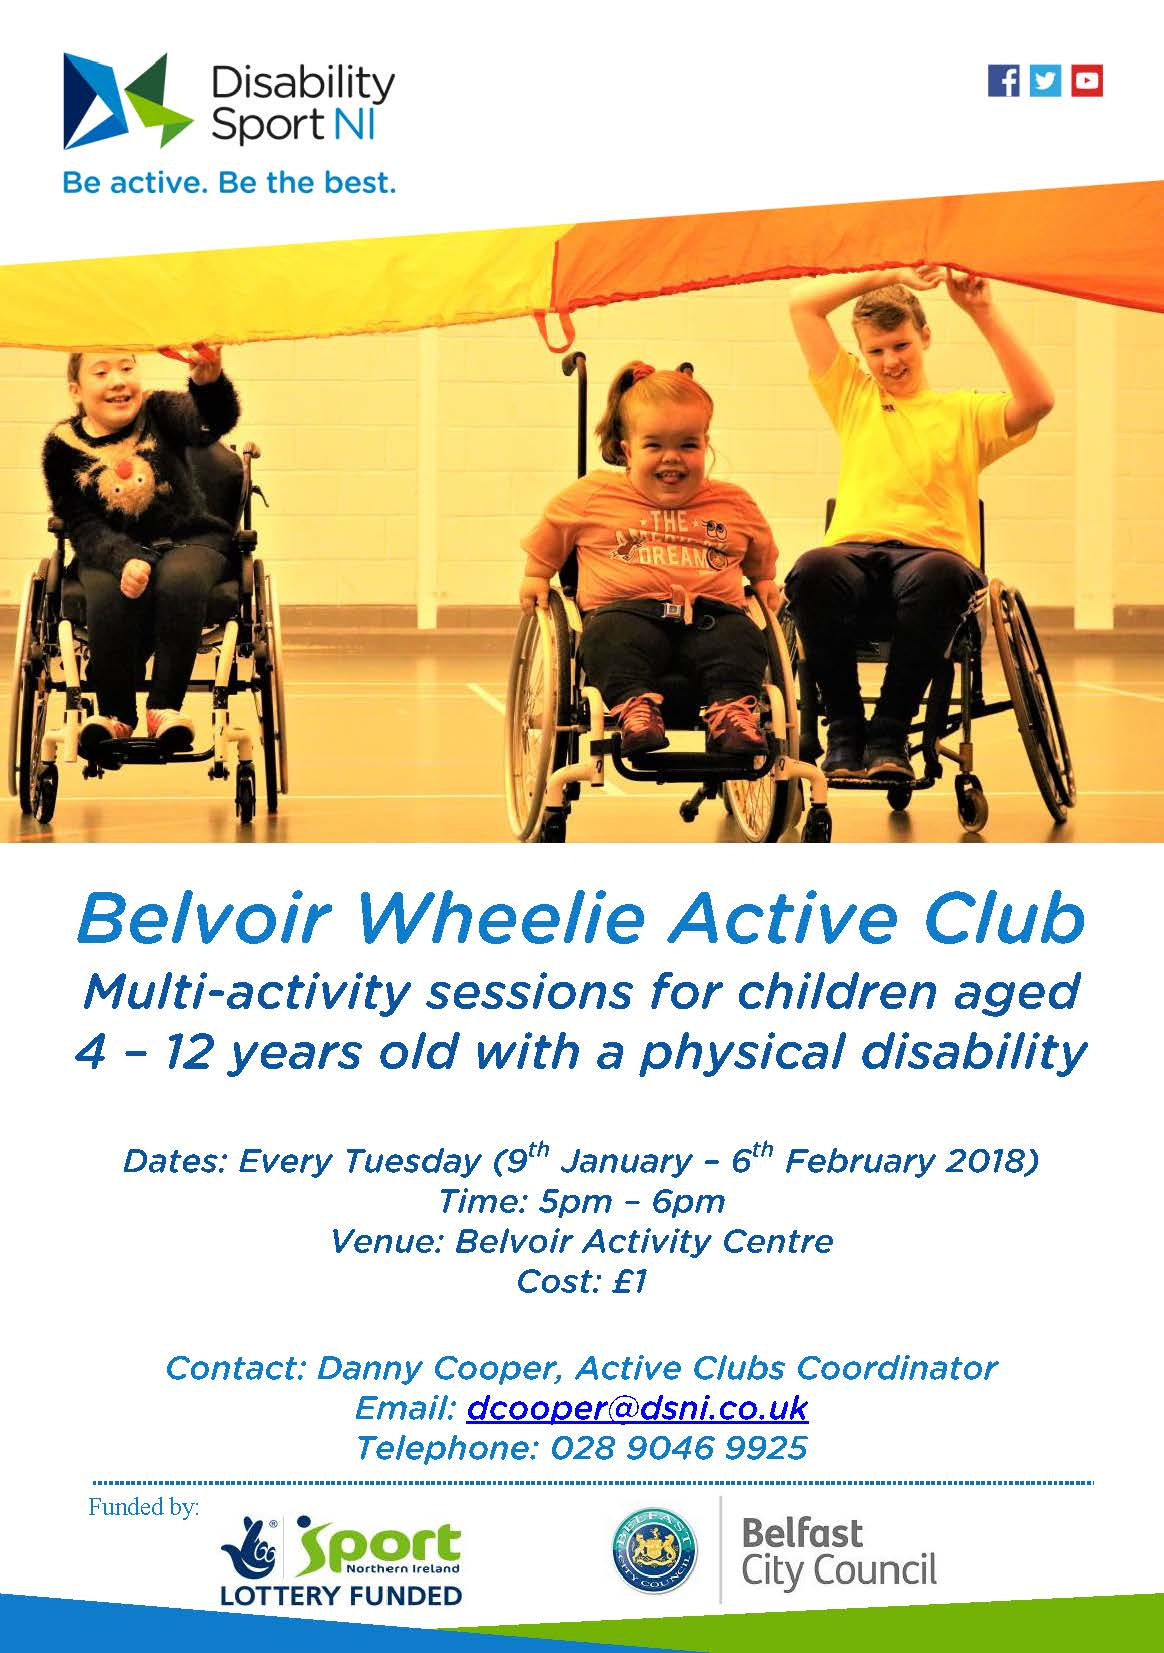 Belvoir Wheelie Active Club flyer. Available in other formats upon request